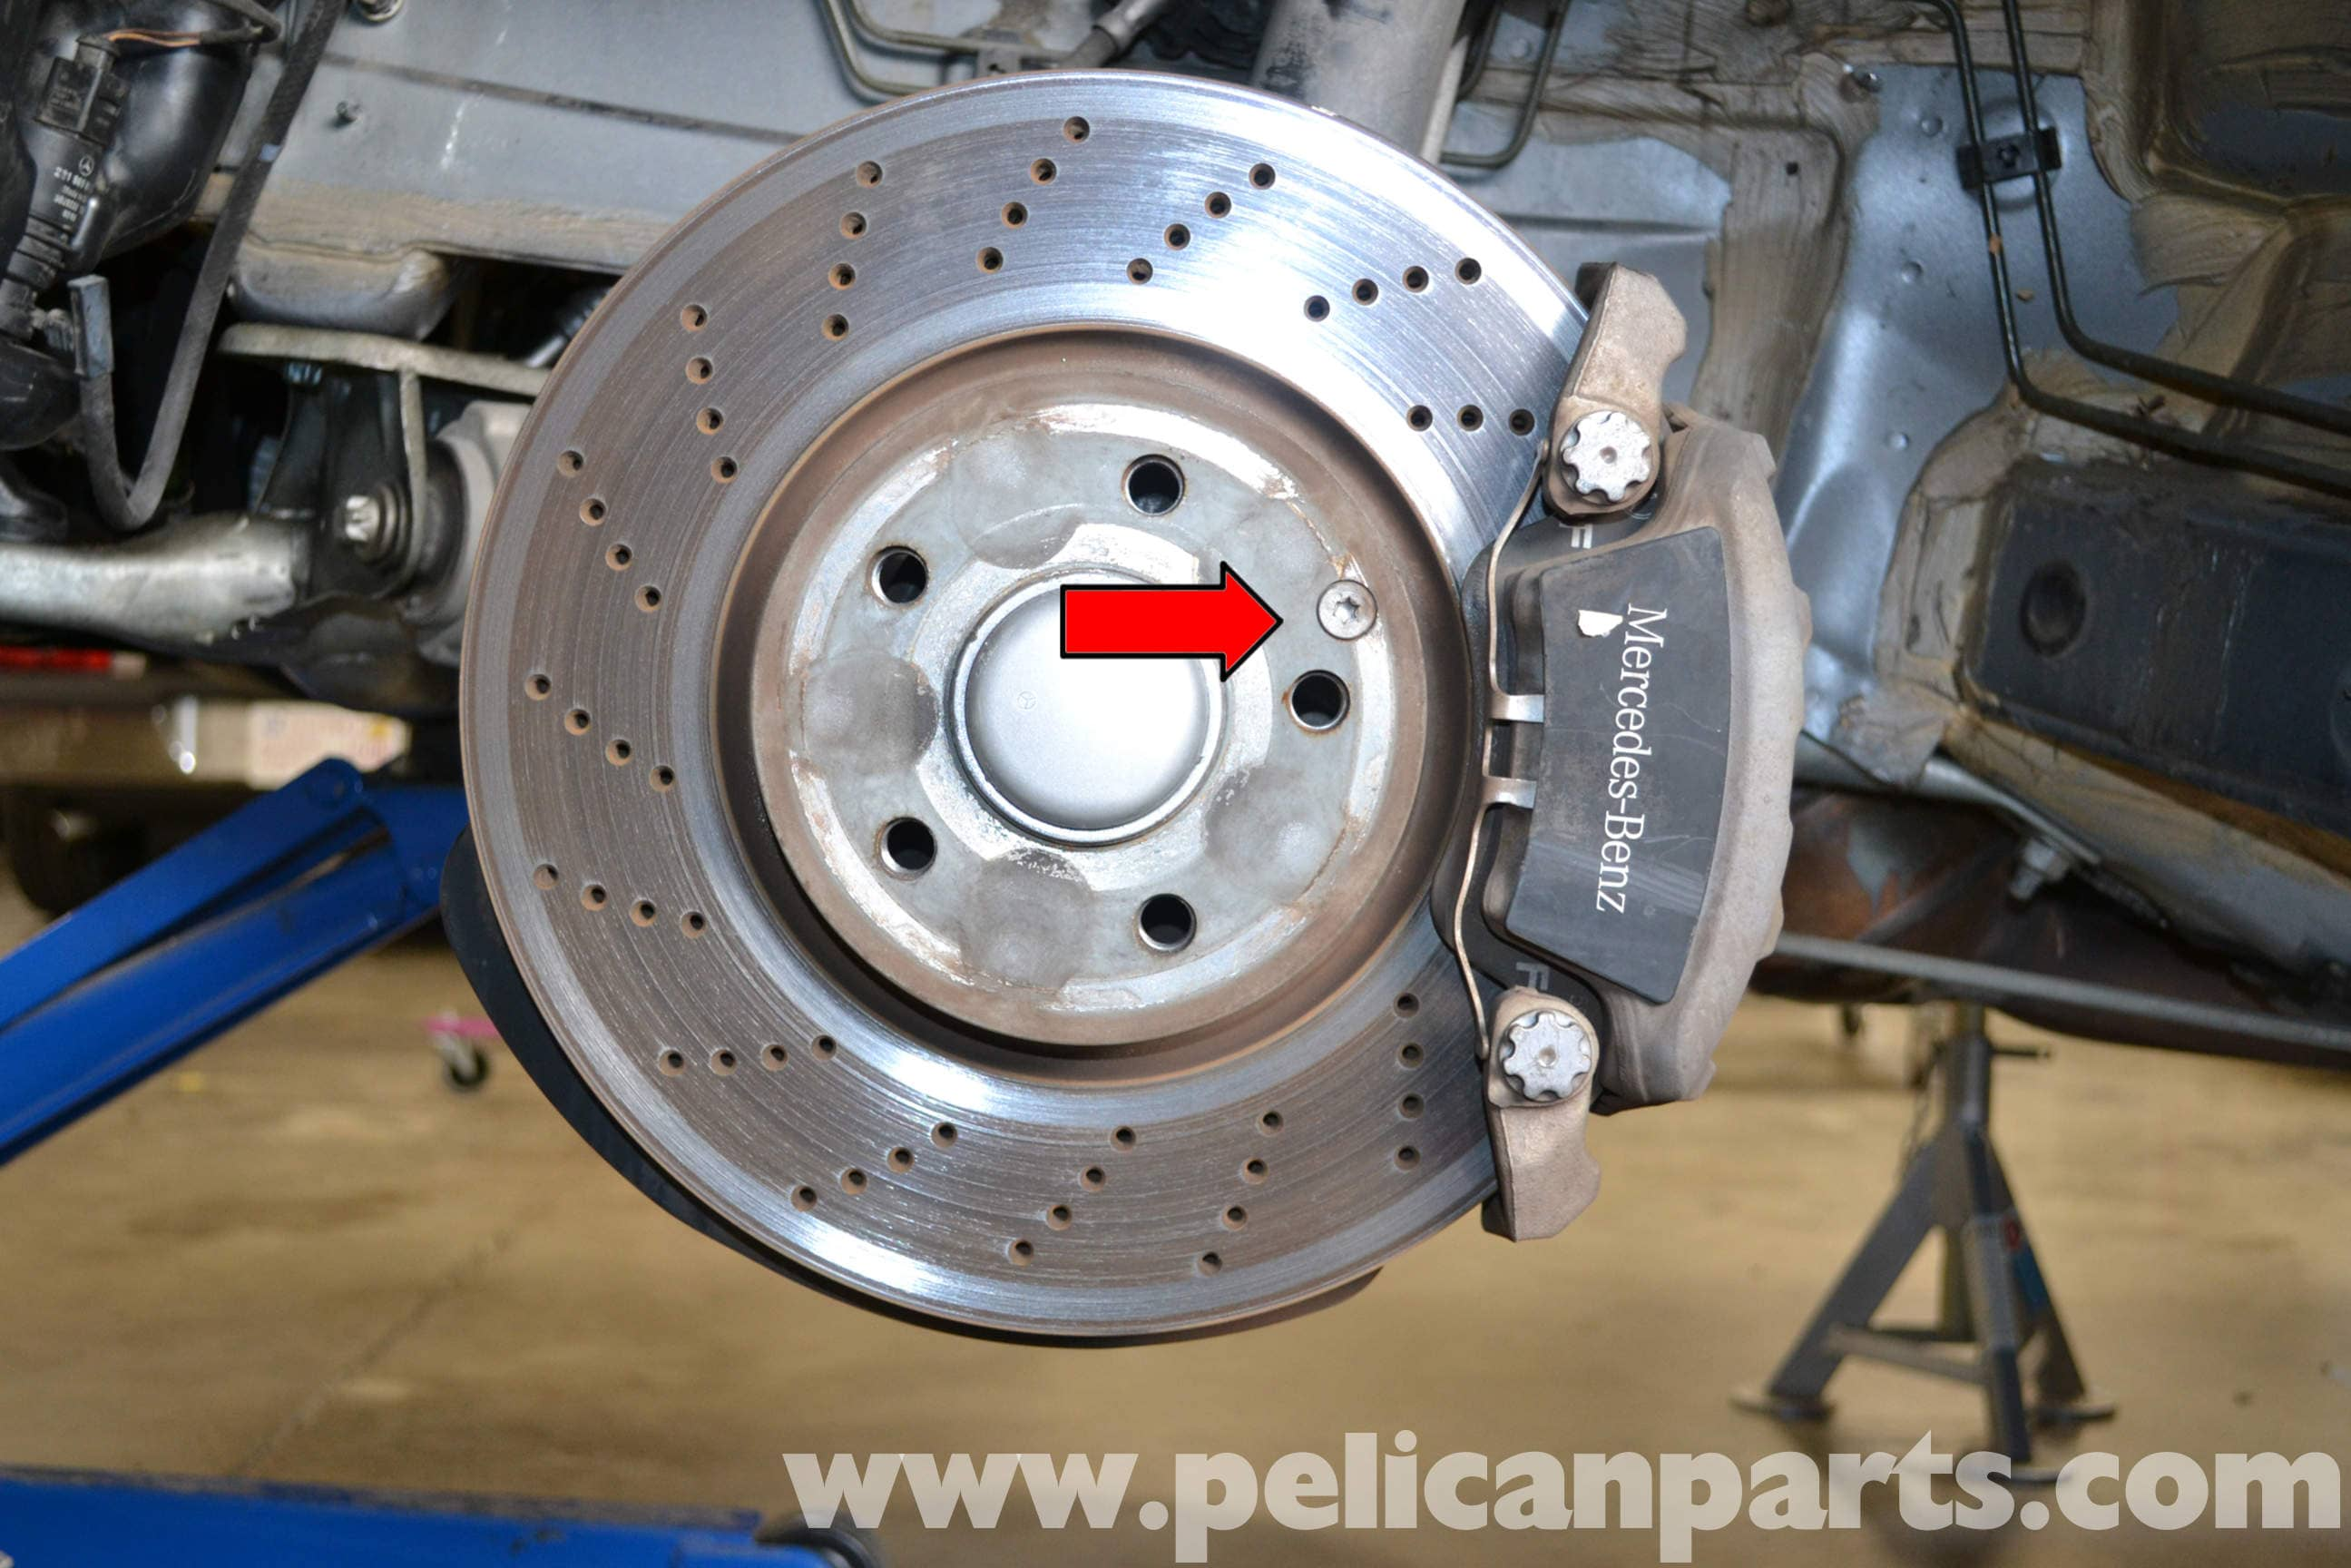 Mercedes Benz W204 Front Brake RotorDisc Replacement